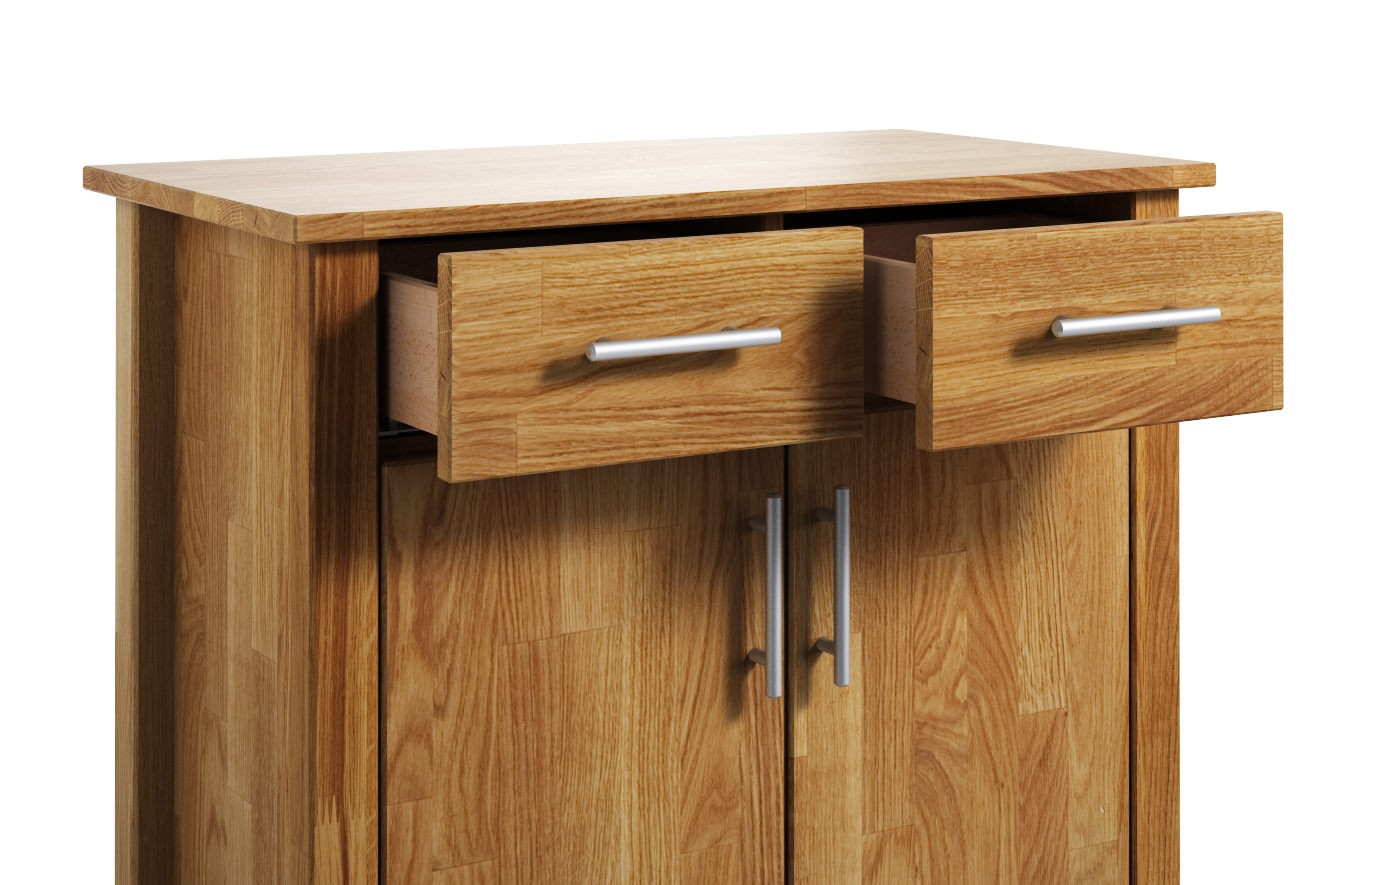 Esszimmer Eiche Rustikal Highboard Eiche Rustikal Highboard Eiche Rustikal With